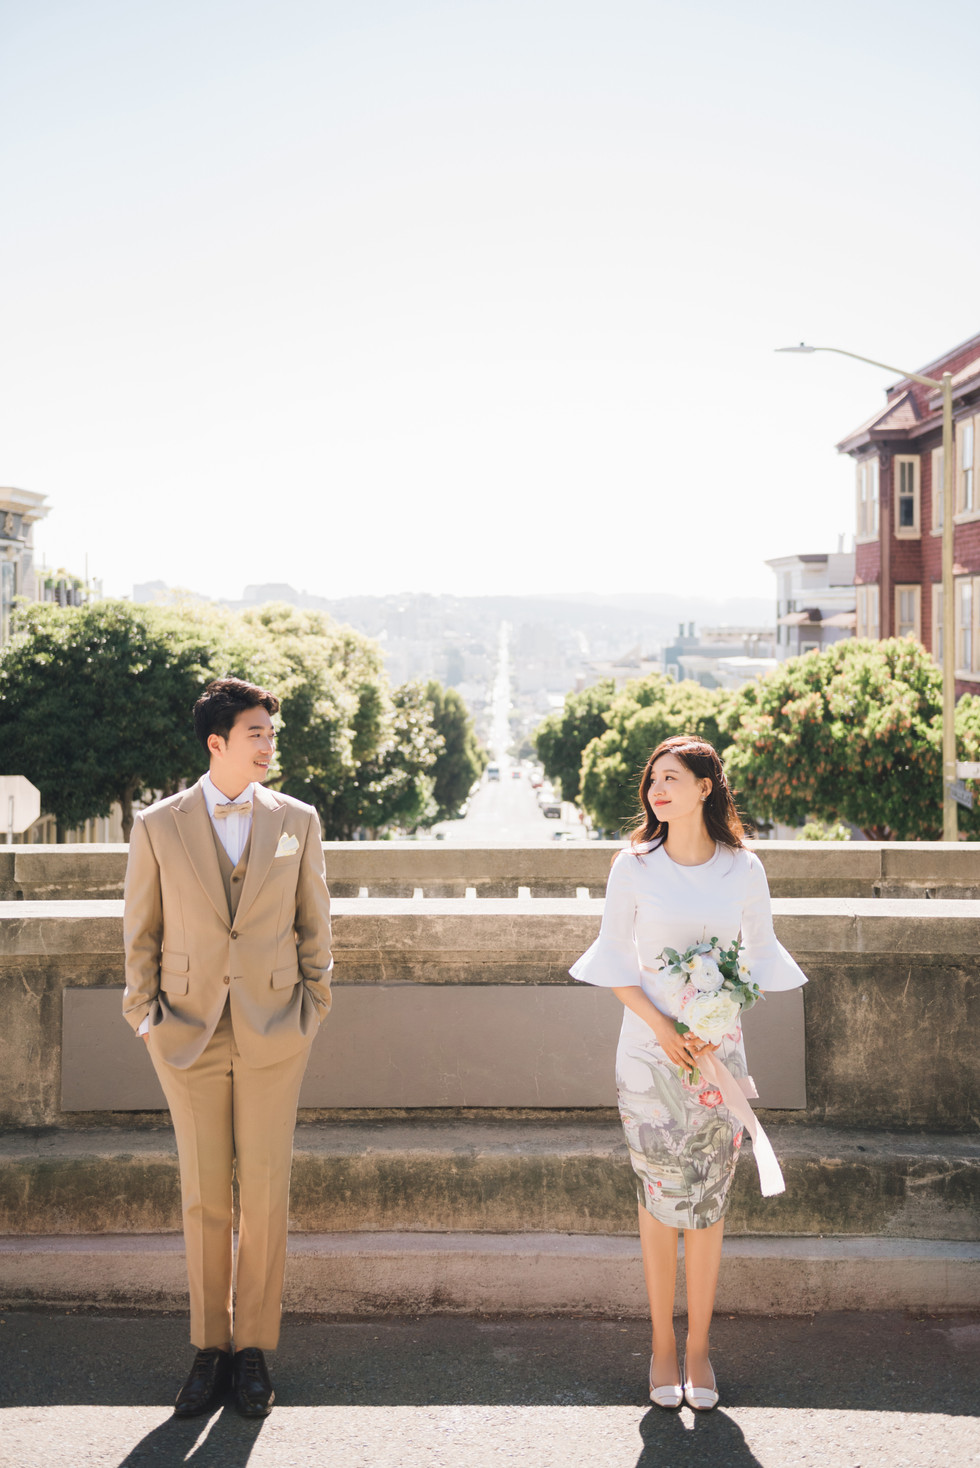 San Francisco City Couple Photos